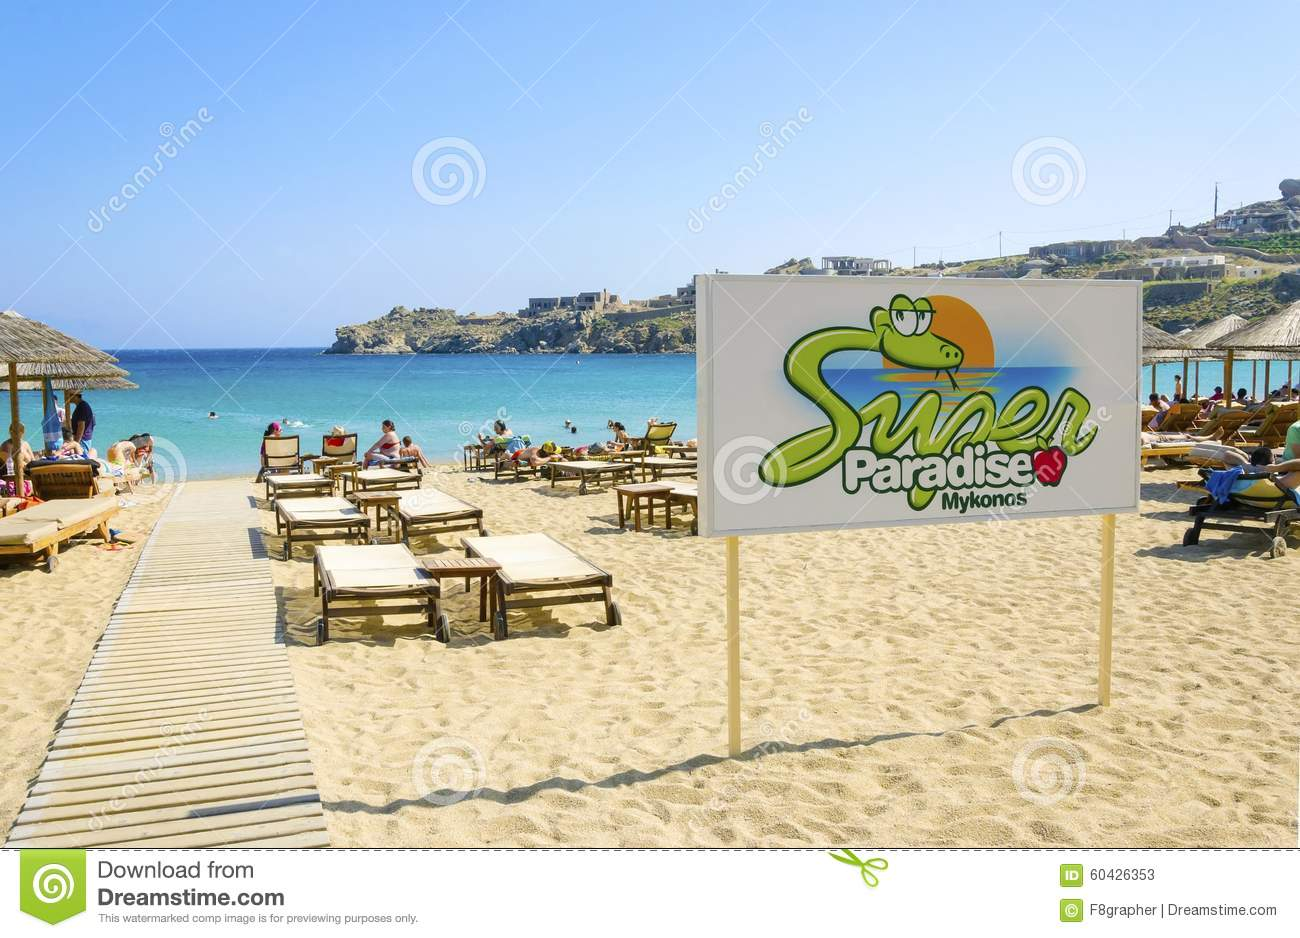 Best Island Beaches For Partying Mykonos St Barts: Super Paradise Beach, Mykonos, Greece Editorial Stock